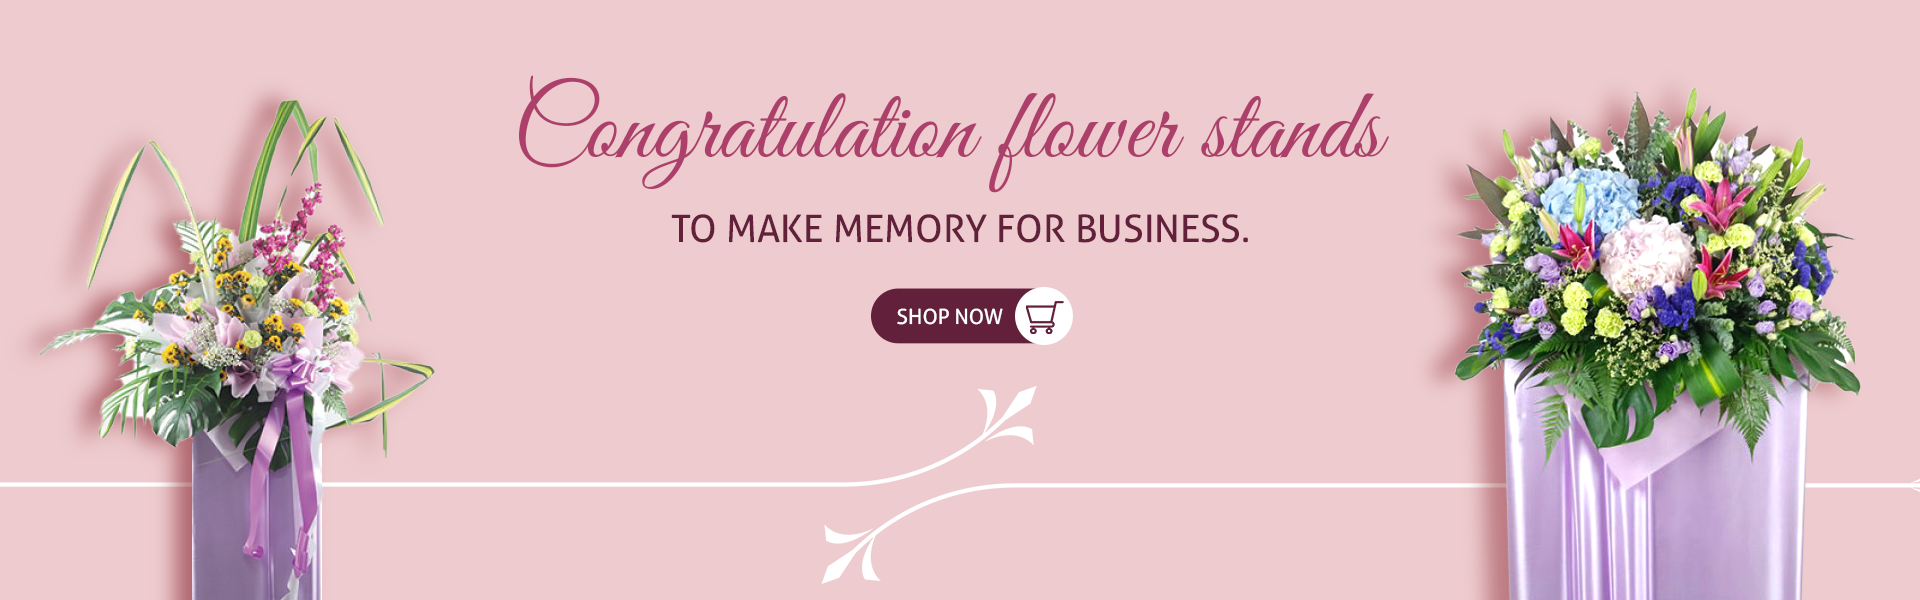 Congratulatory Flower Stands